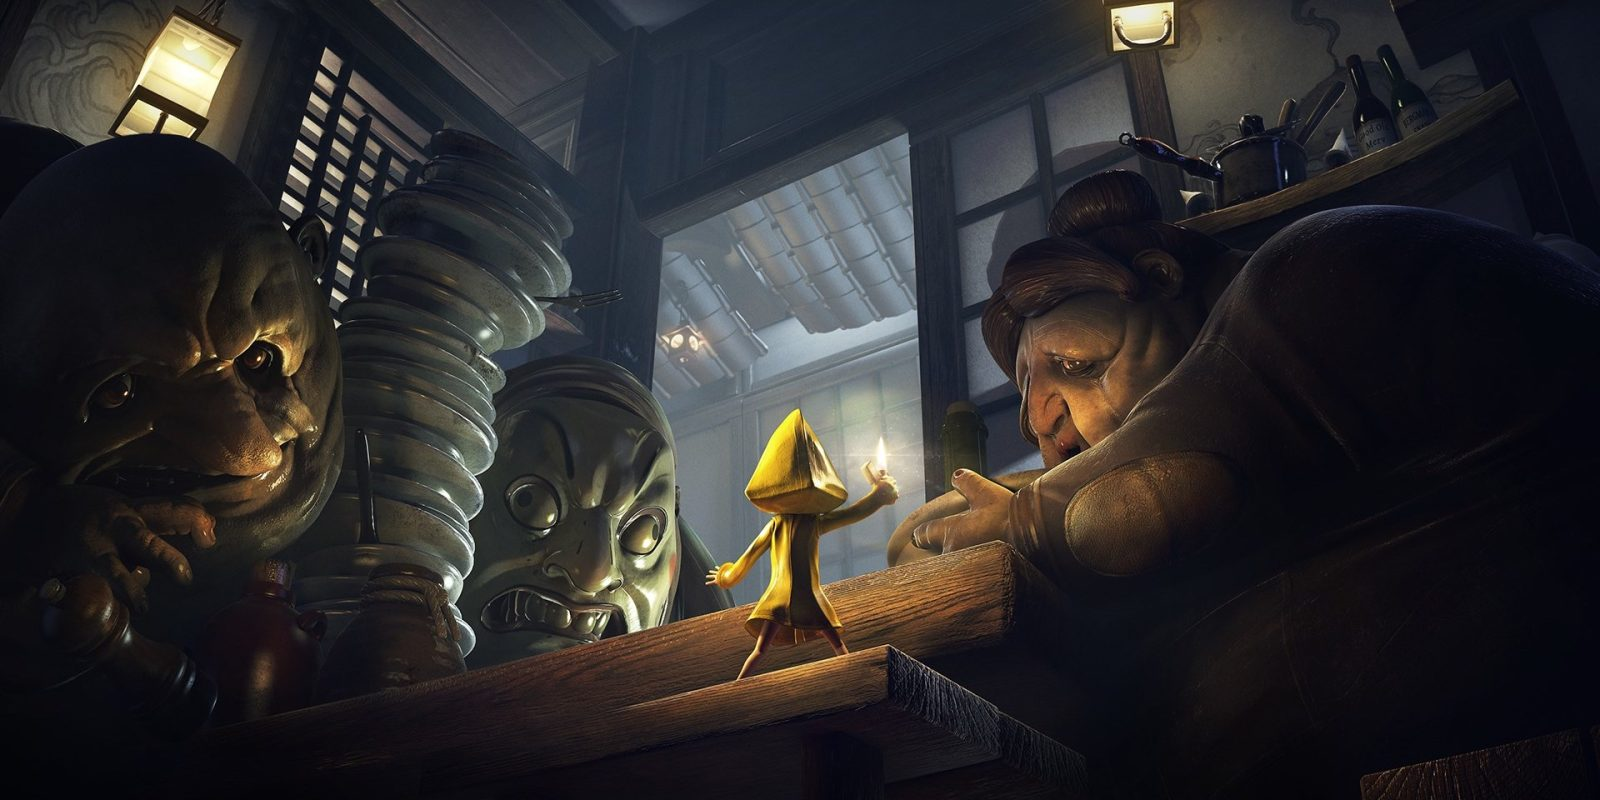 Switch eShop deals from $3.50: Little Nightmares, Escapists 2, Bleed 2, more